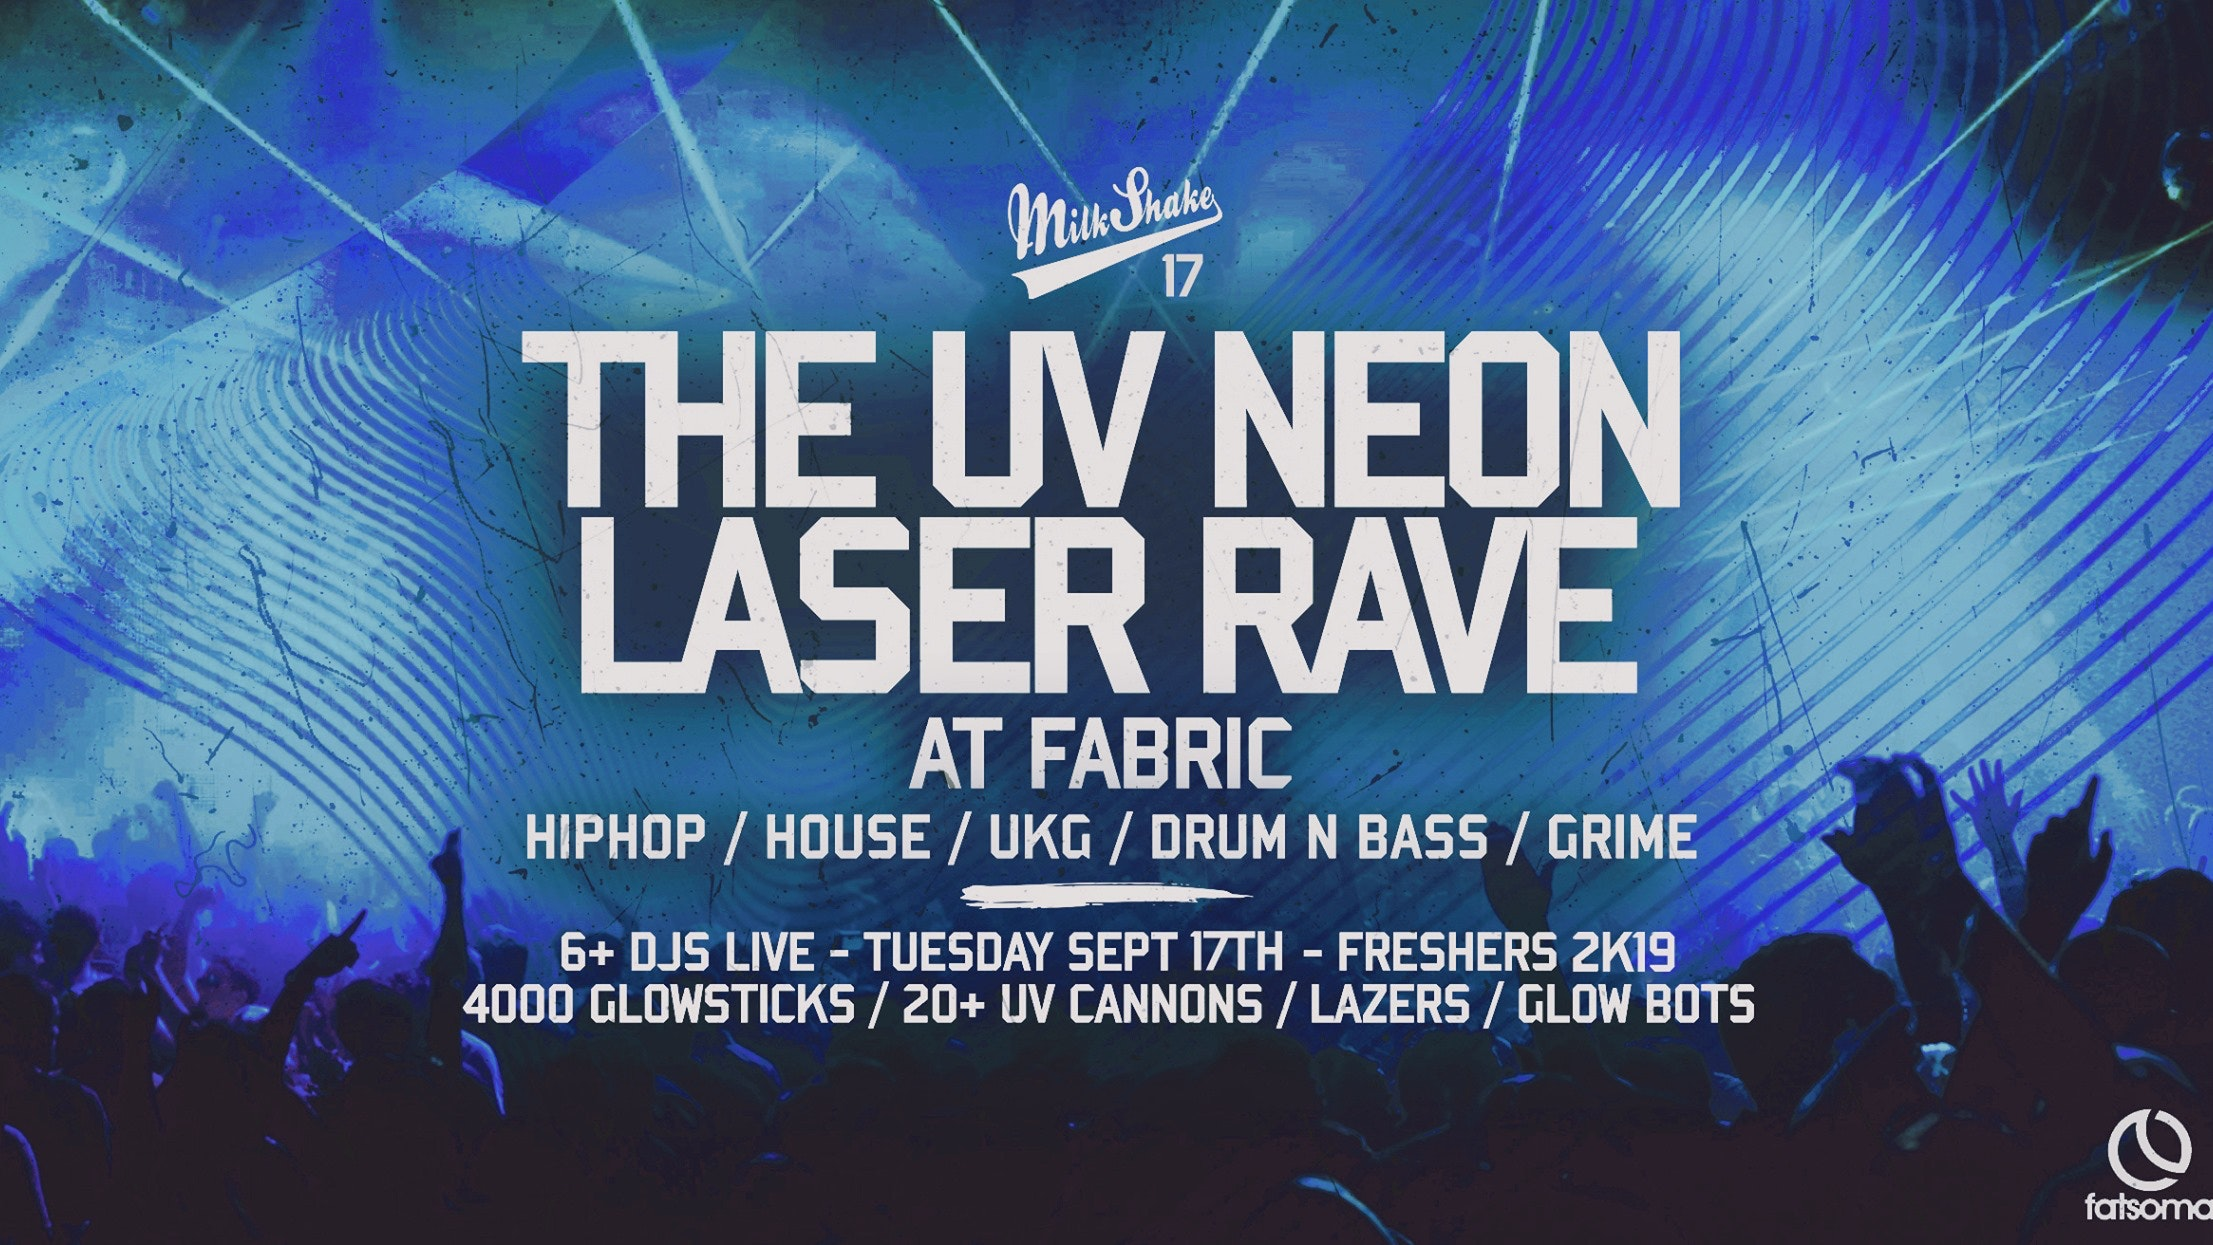 TONIGHT – FABRIC: The UV Neon Laser Rave, Live at Fabric London | Freshers 2019